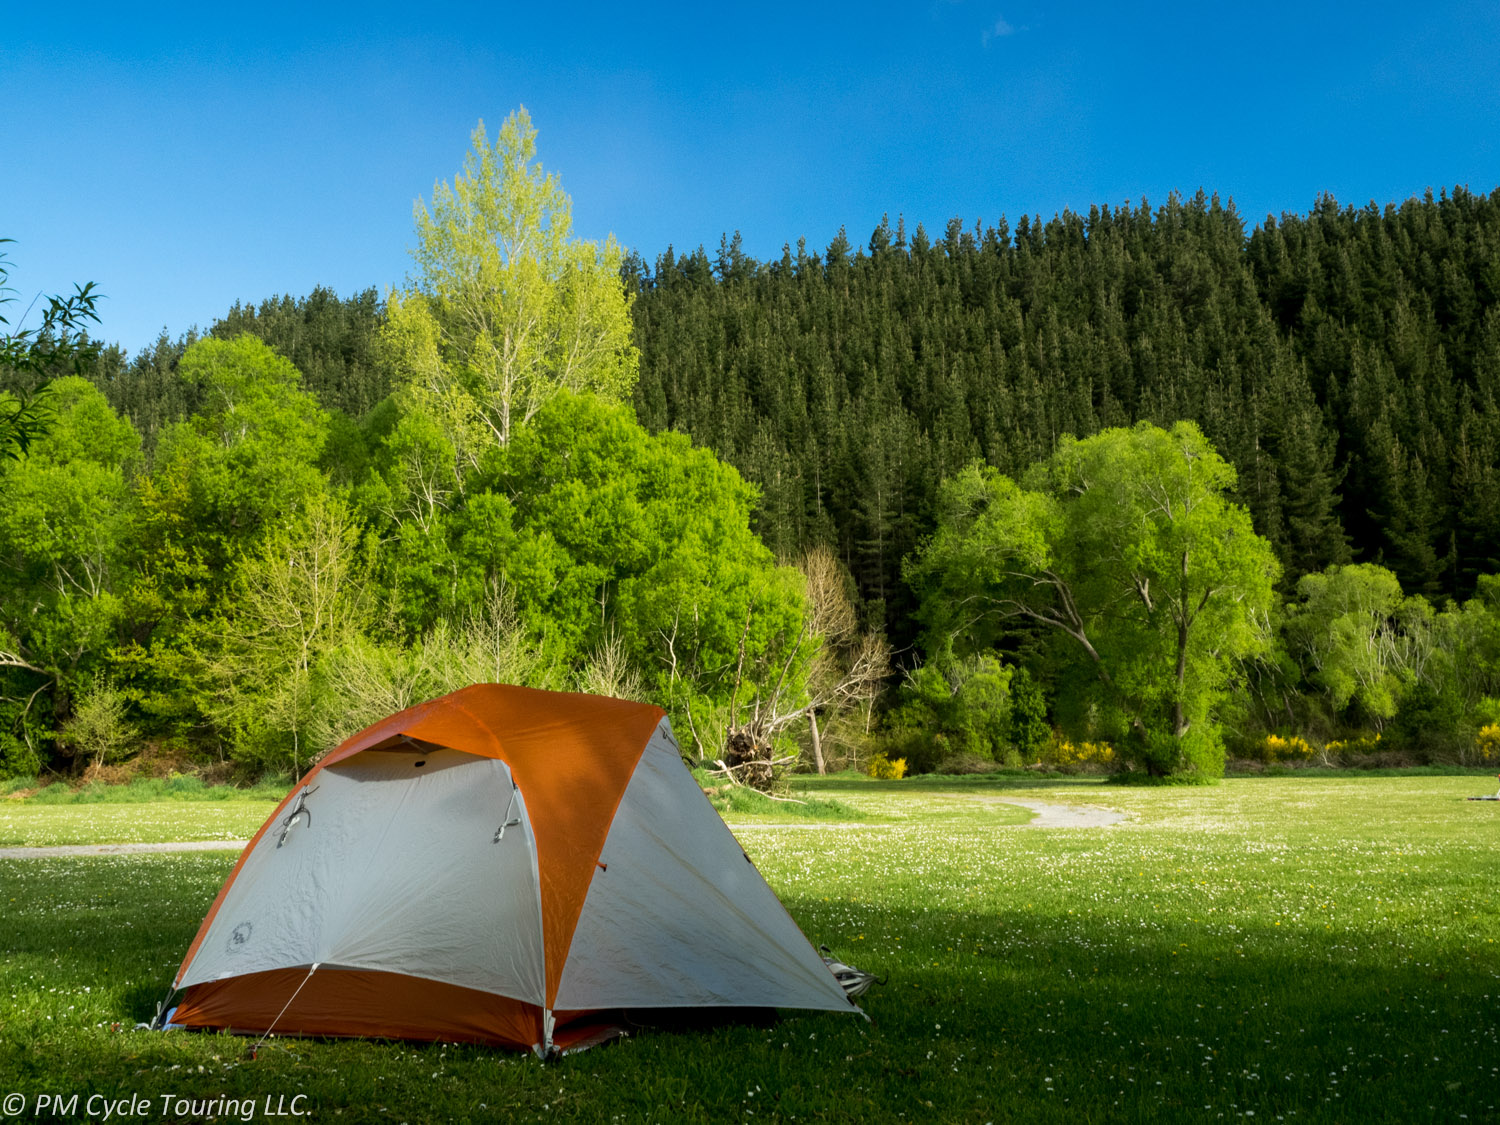 a tent set up in a field with a forest surrounding it